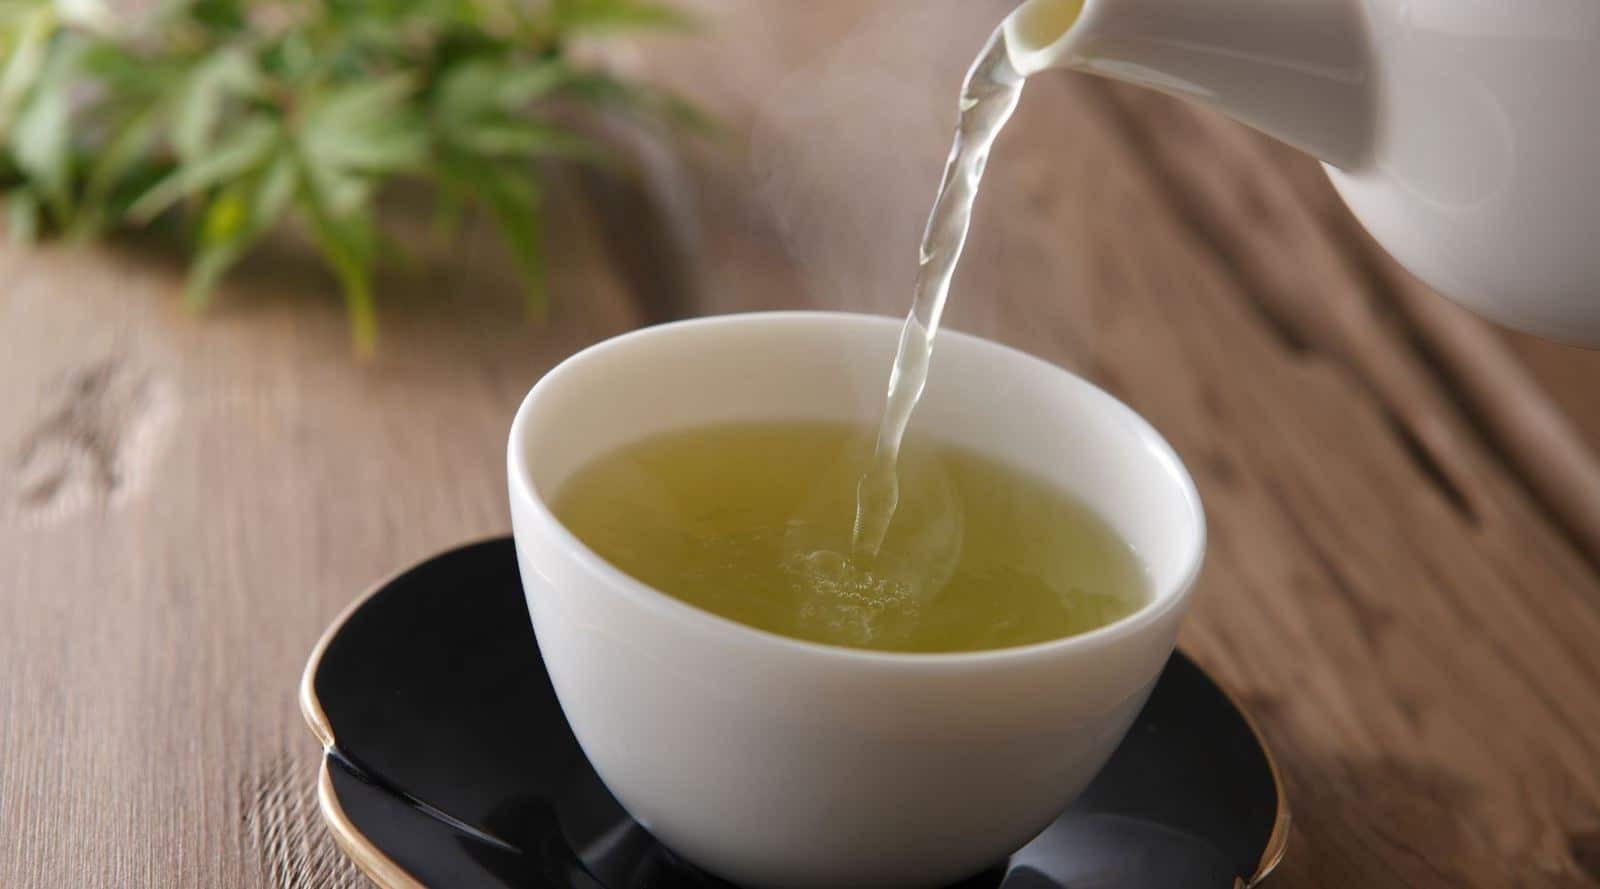 japanese green tea vs chinese green tea (8 differences)